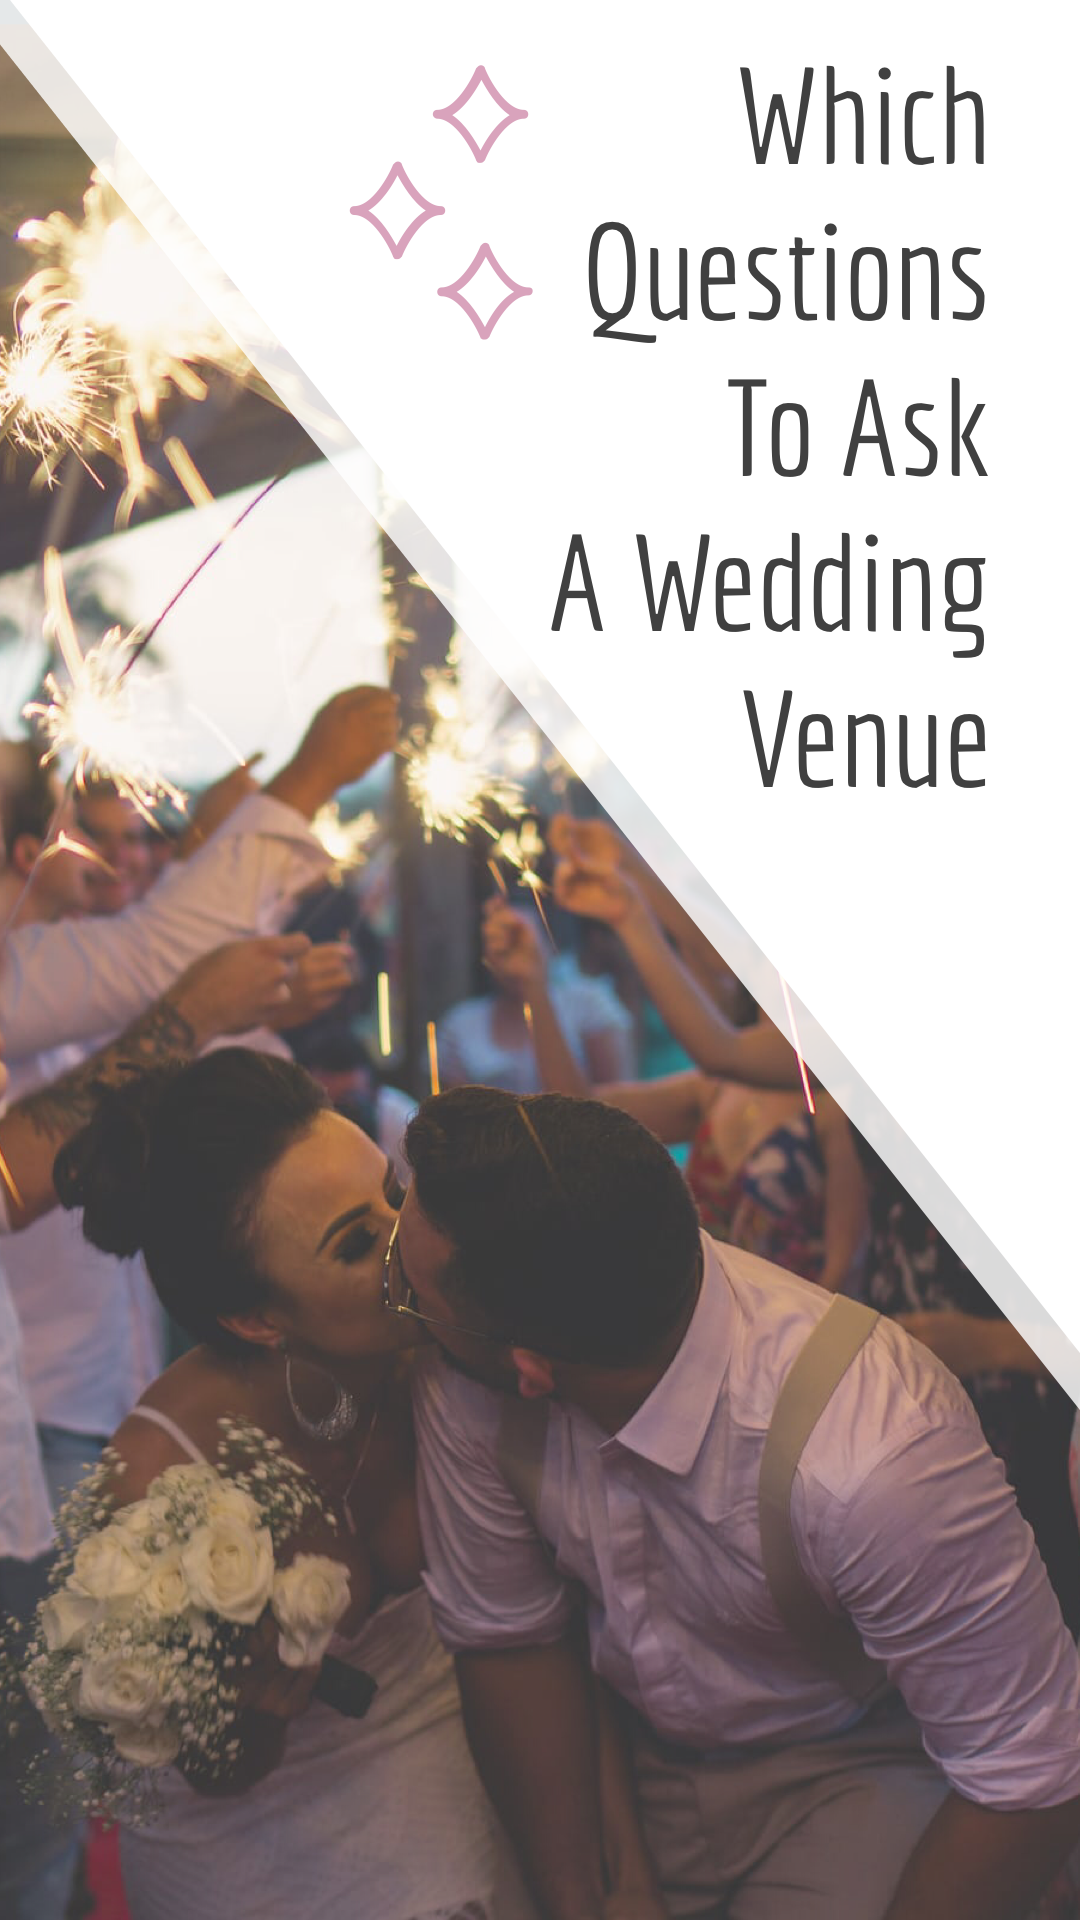 Sponsored Such Good Info Here For The Planning Couple Engaged Wedding Weddingvenue Weddingadvic In 2020 Wedding Venues Wedding Insurance Wedding Venues Checklist